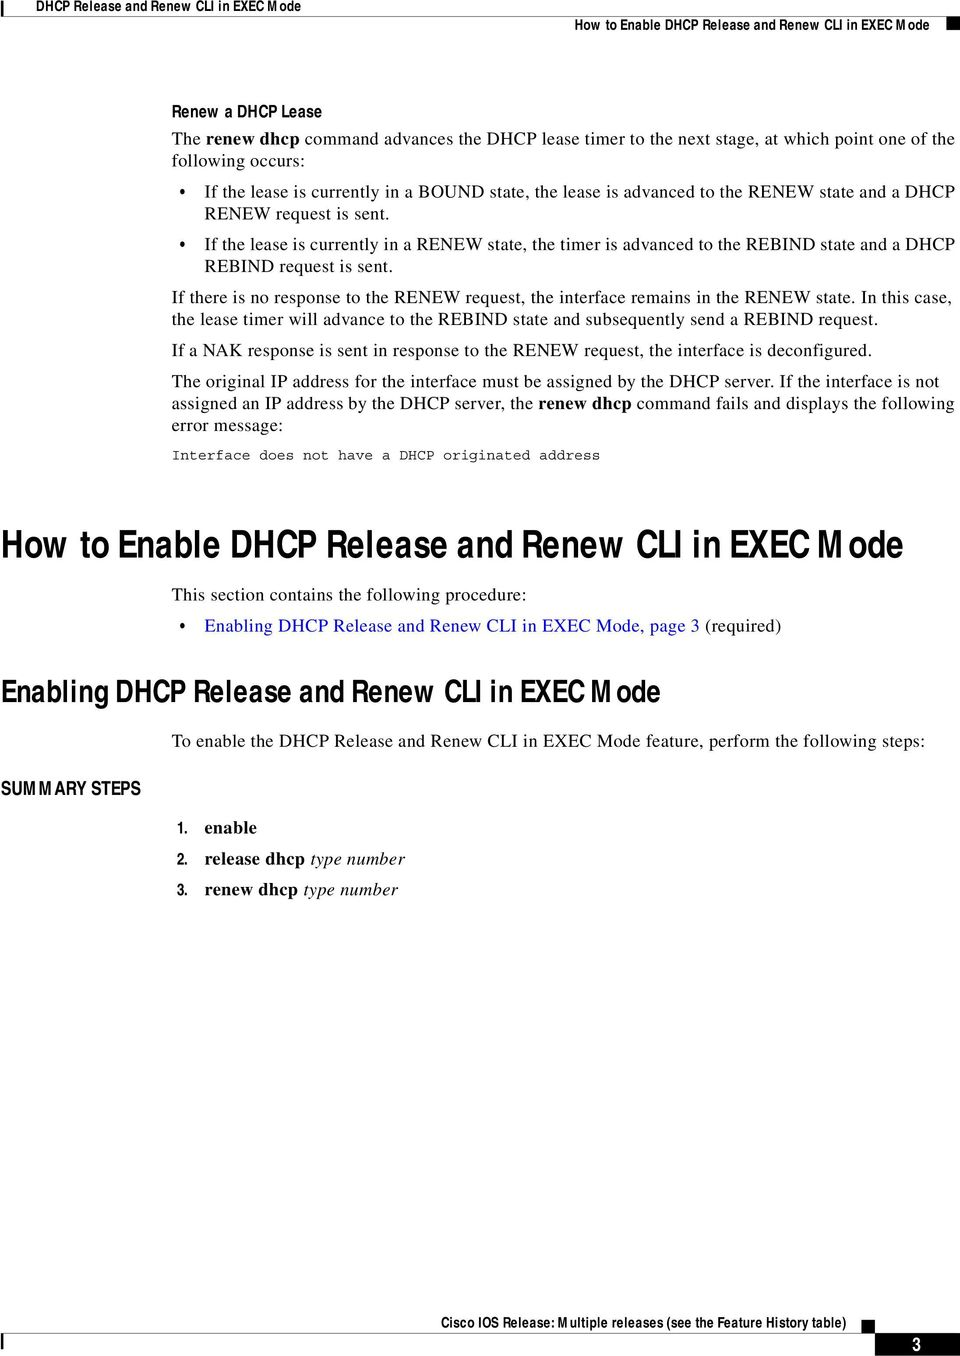 If the lease is currently in a RENEW state, the timer is advanced to the REBIND state and a DHCP REBIND request is sent.